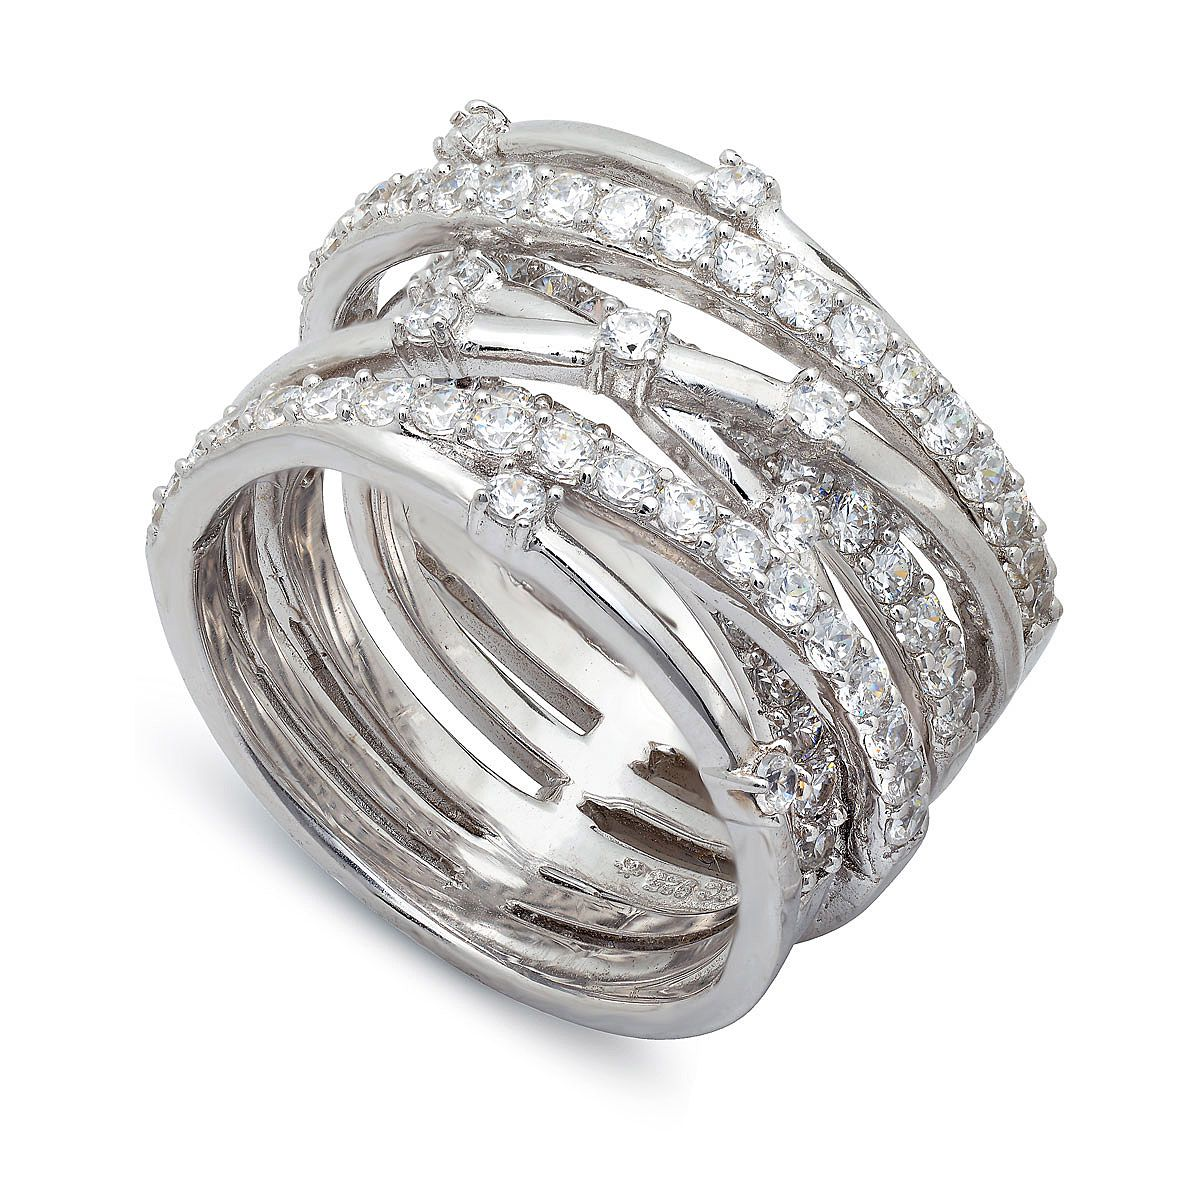 Crislu Intertwine Sterling Silver Cz Ring To Purchase Call Nch Galleries At 951 734 5989 Sterling Silver Cz Rings Entwined Ring Fashion Rings